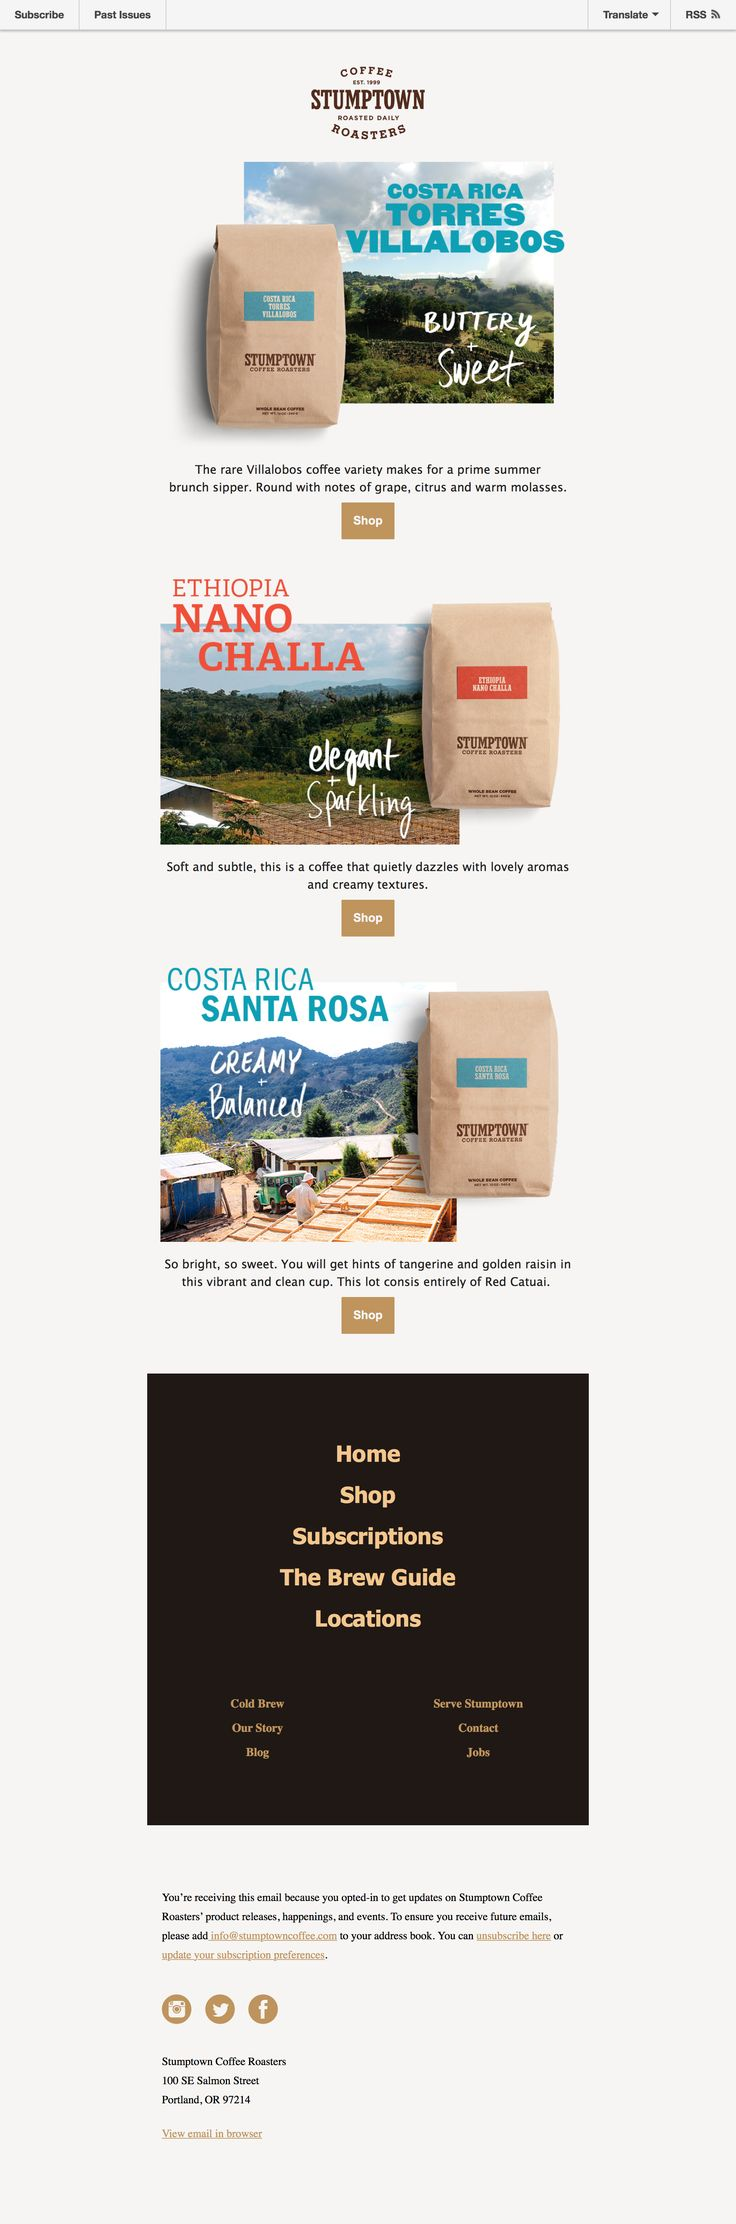 11 best Email Footer Design images on Pinterest | Email footer ...